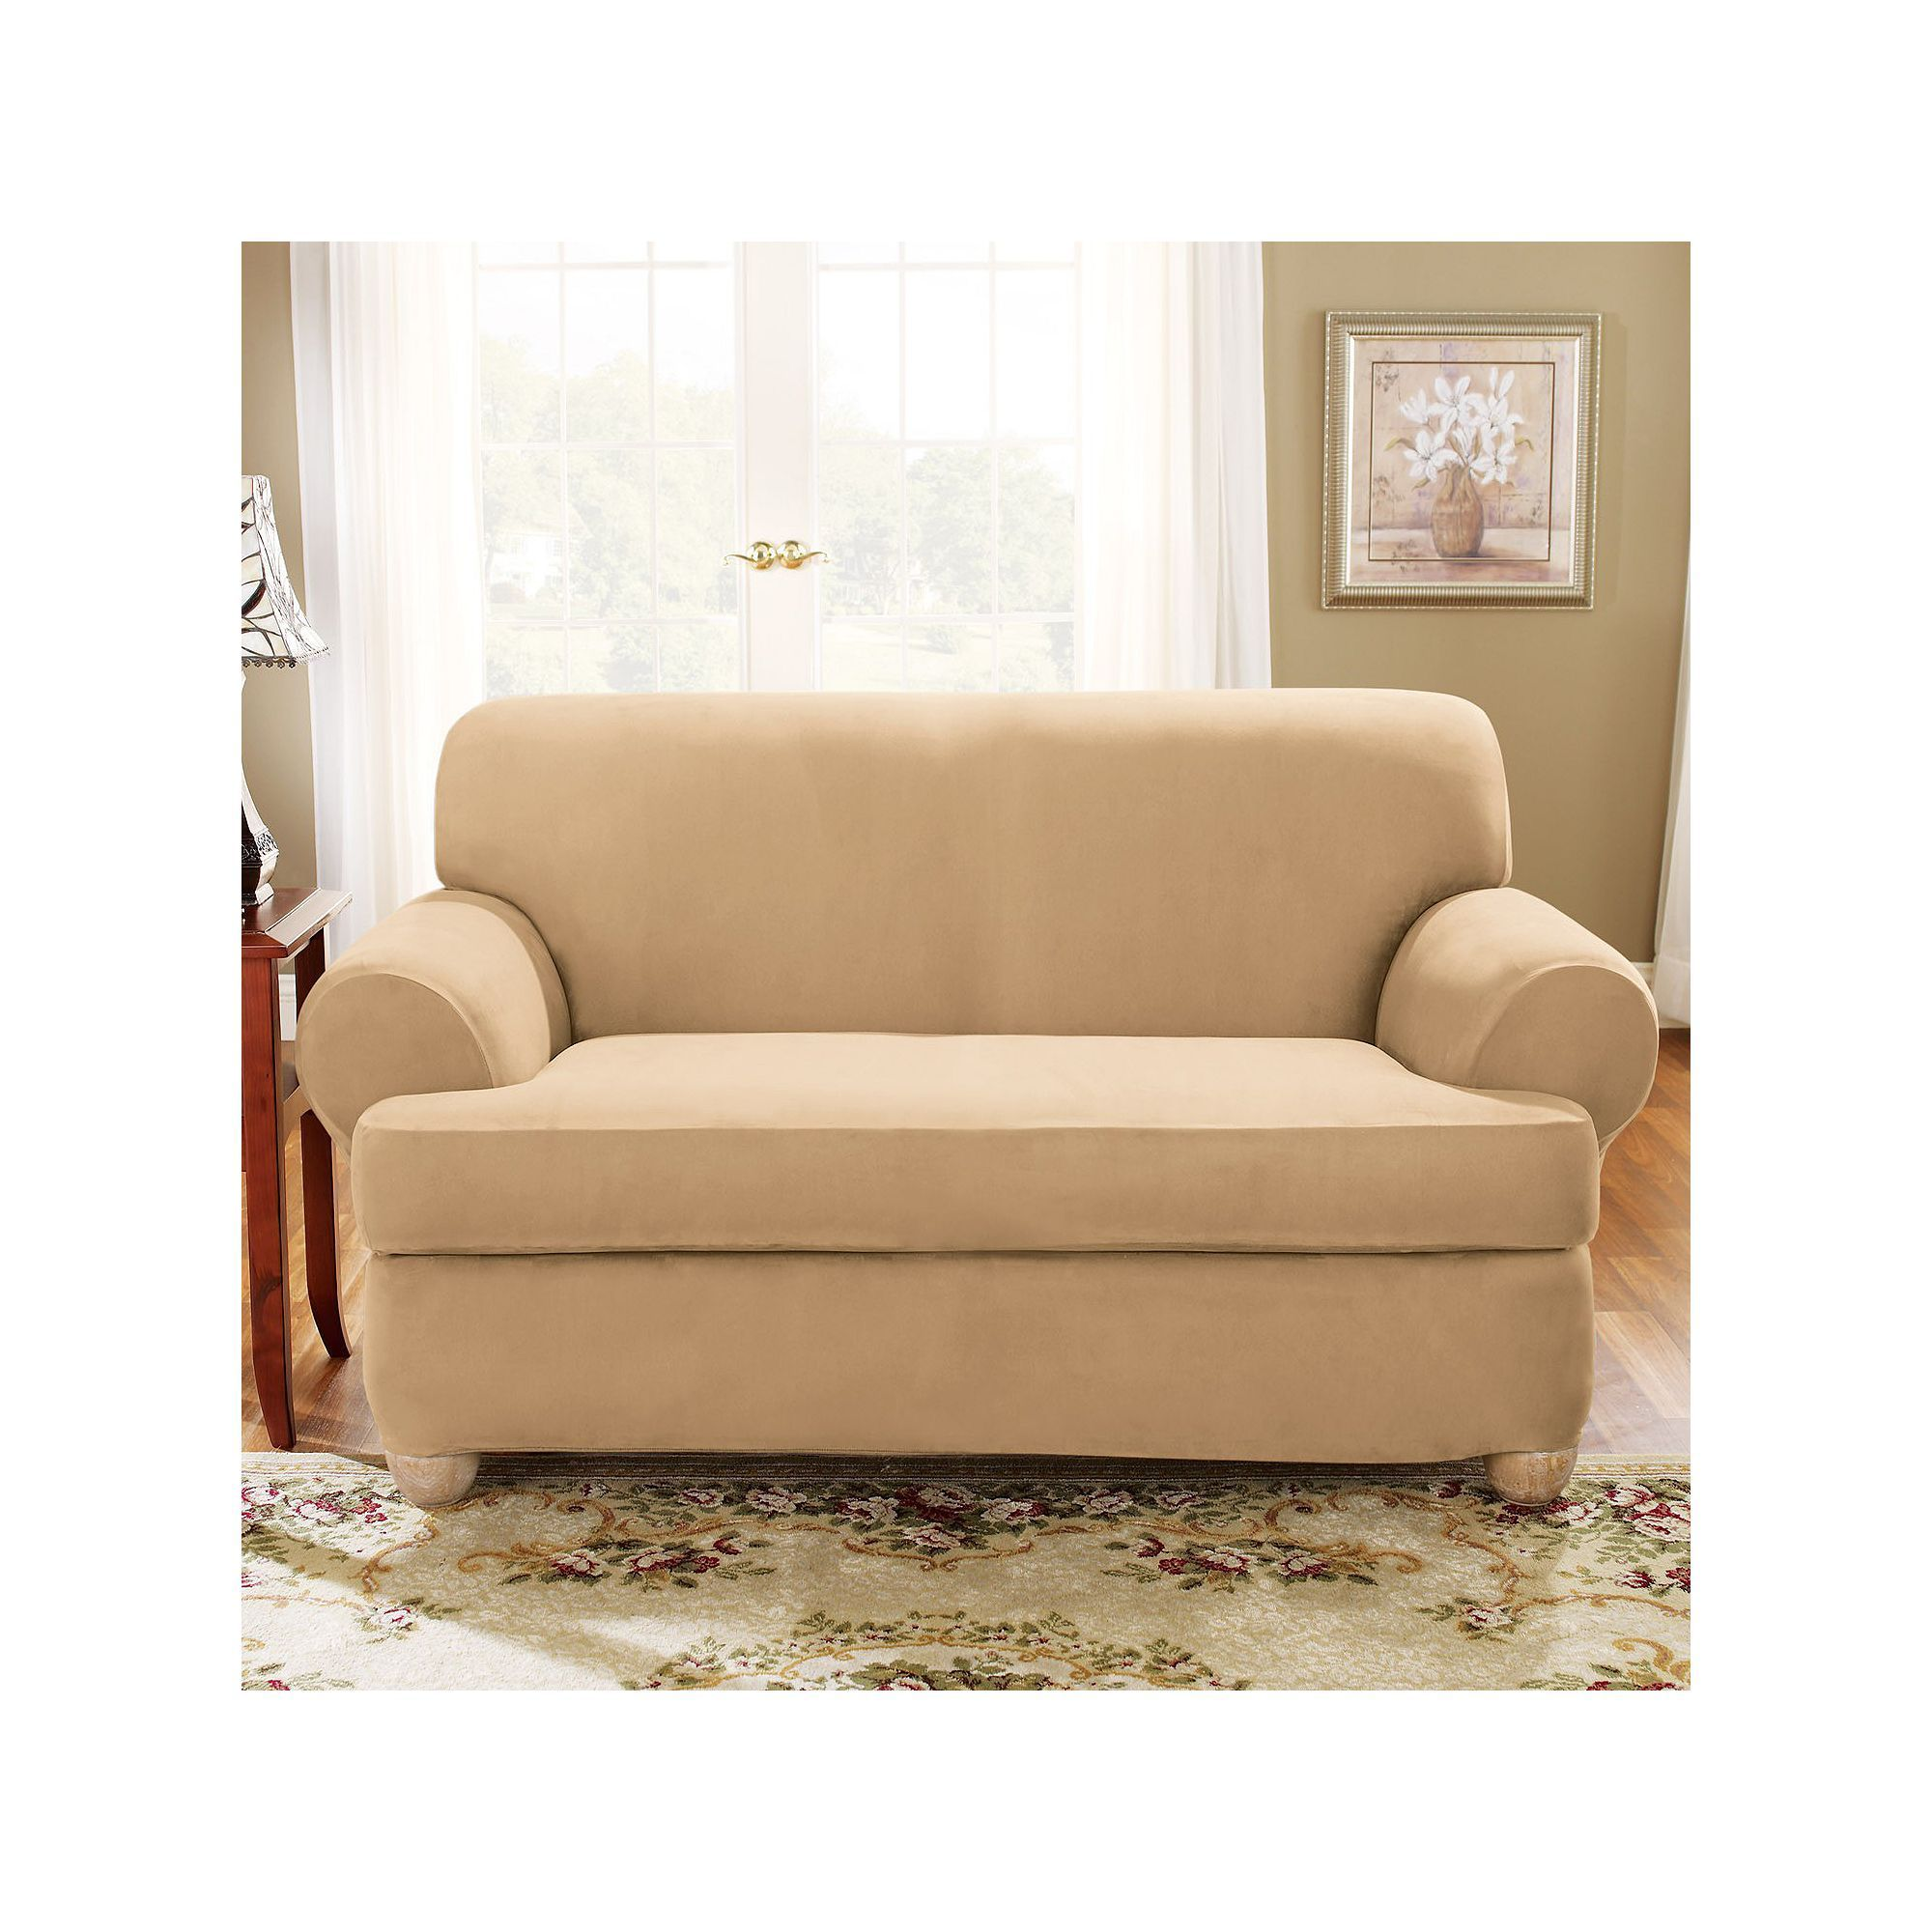 khaki sofa slipcovers bloomingdales elite leather sure fit stretch suede slipcover huge deal on